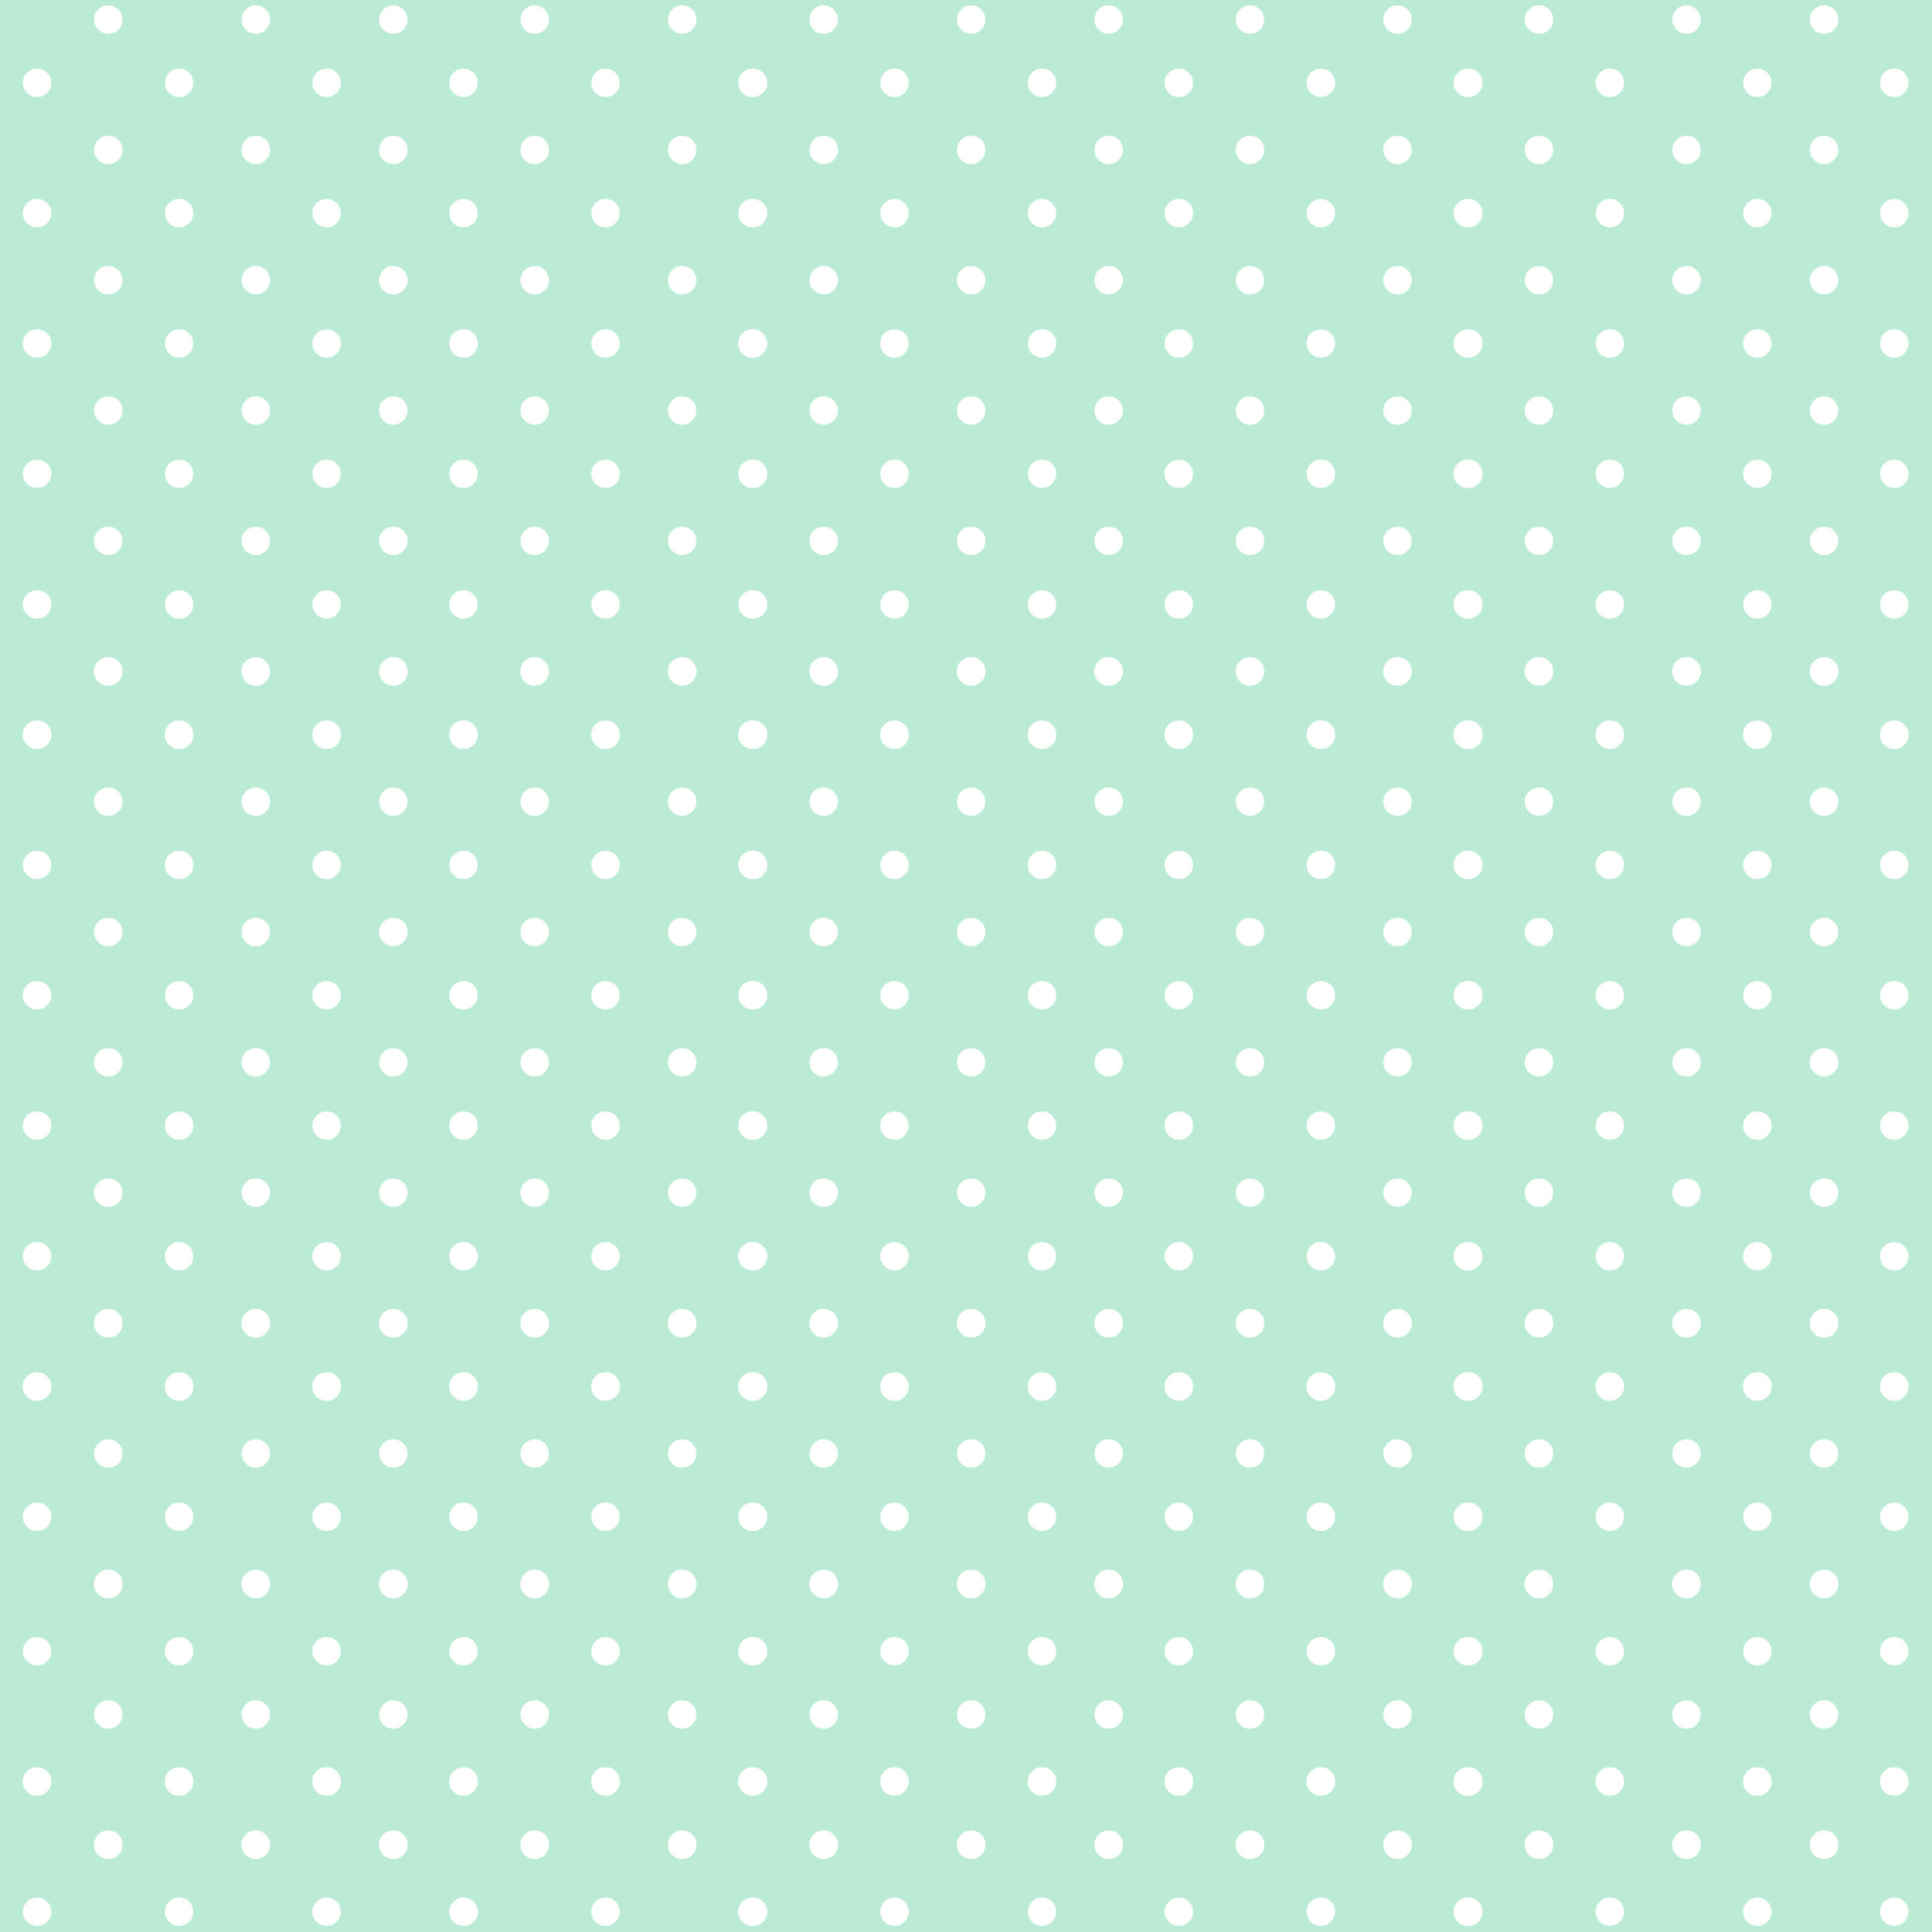 Scrapbook paper images - Free Mint Scrapbooking Papers